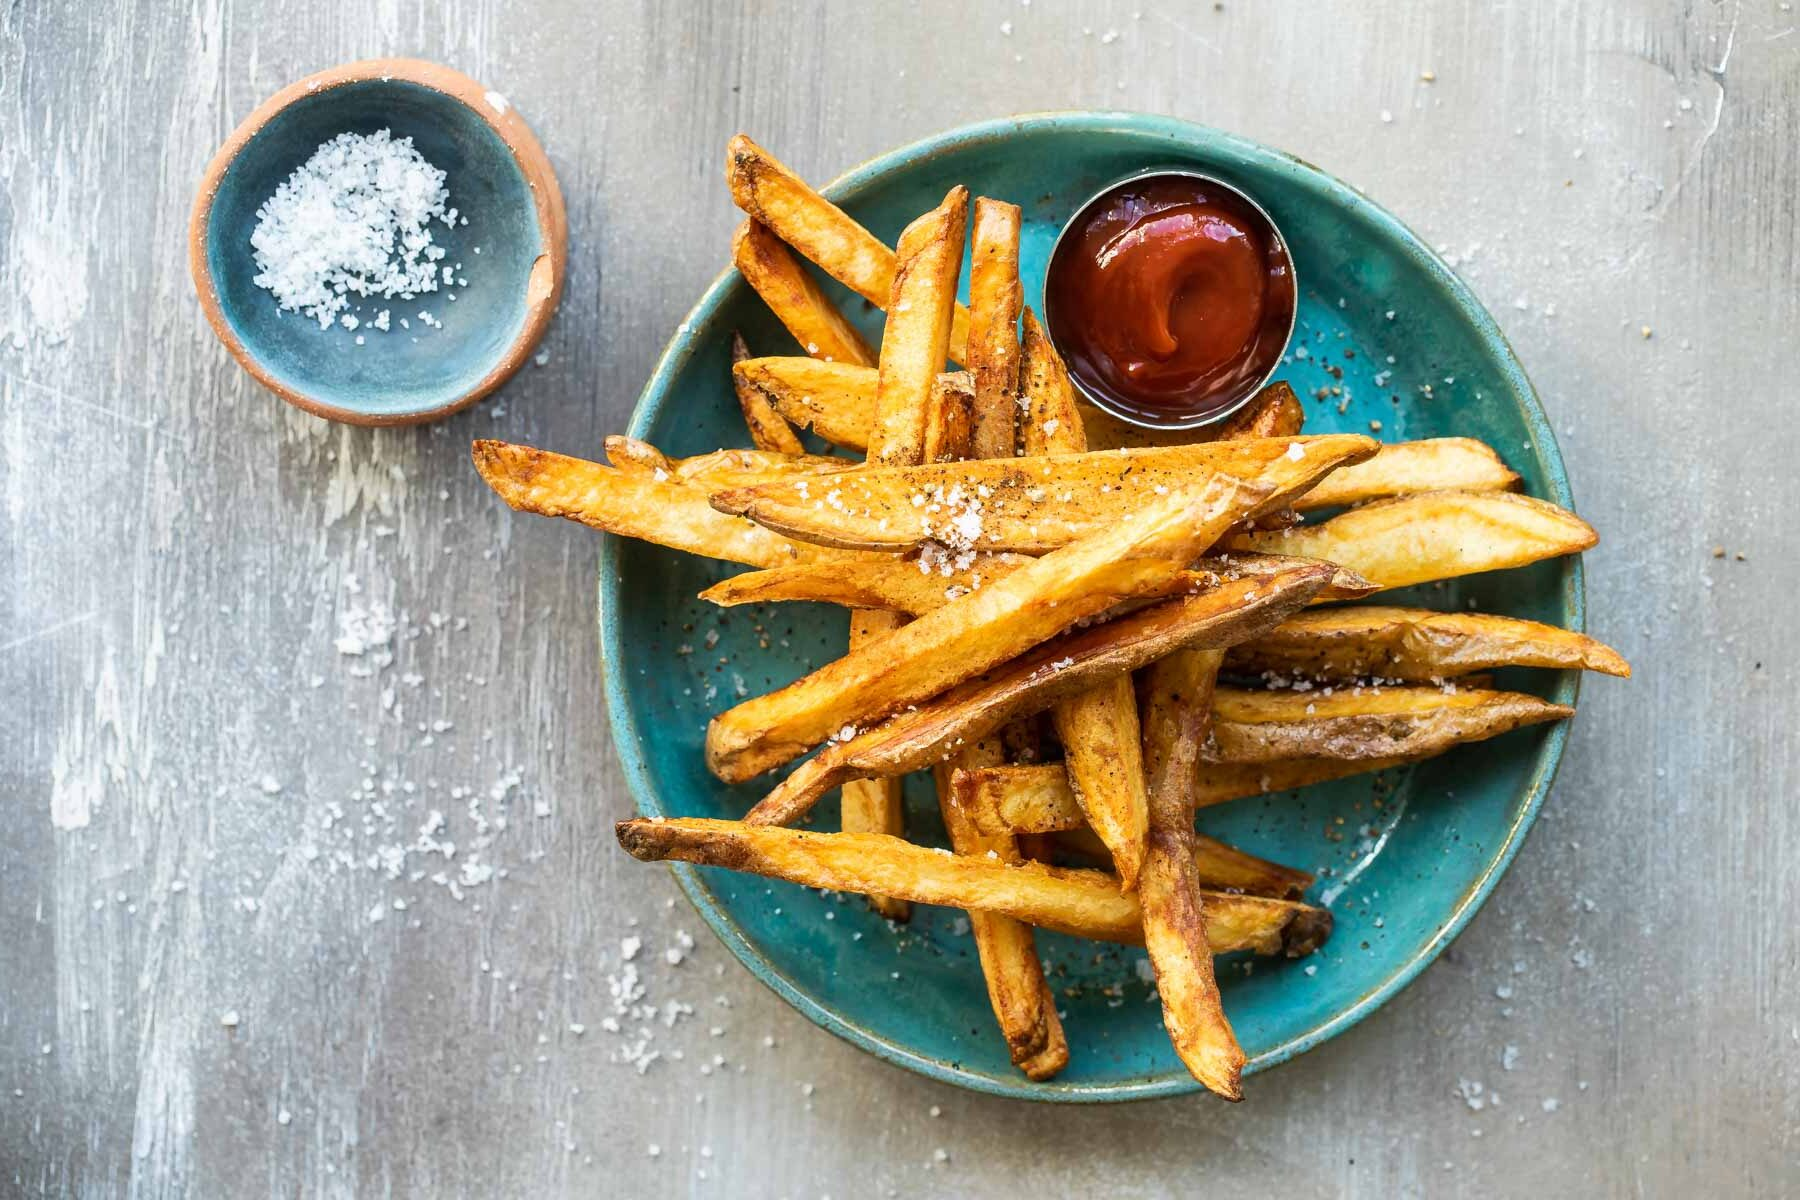 Homemade French fries on a teal plate with ketchup.